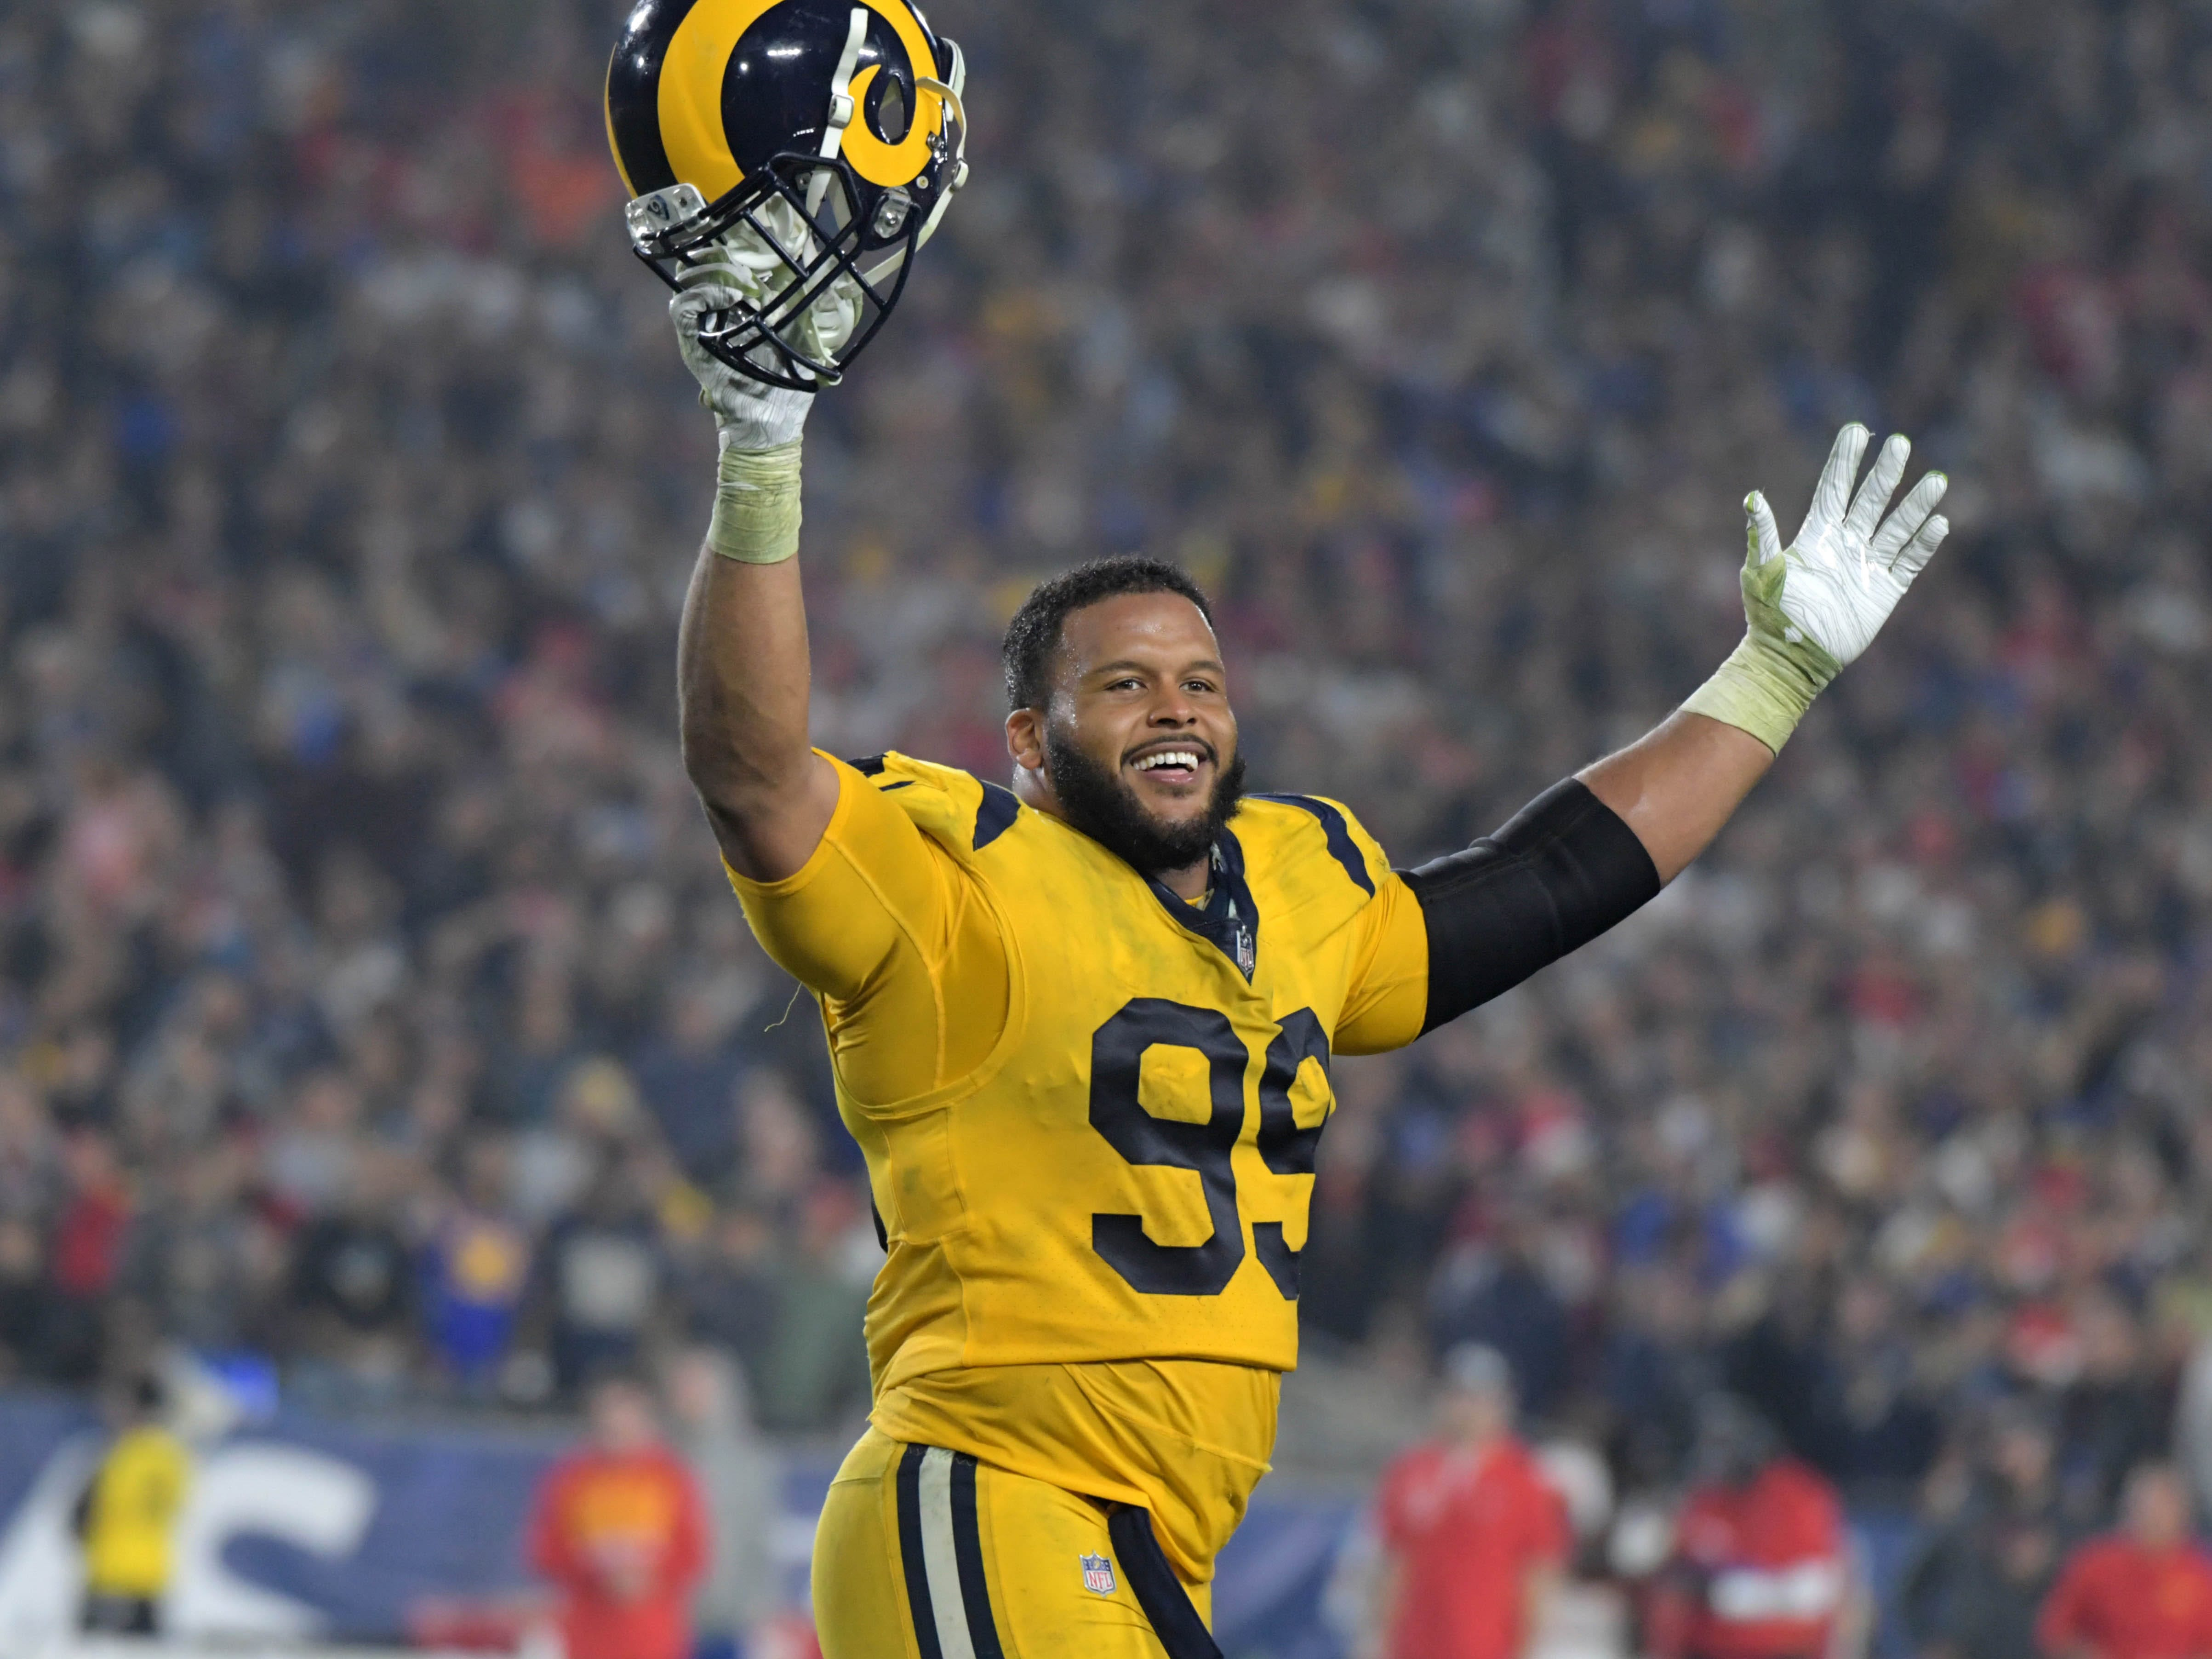 DT - Aaron Donald, Los Angeles Rams